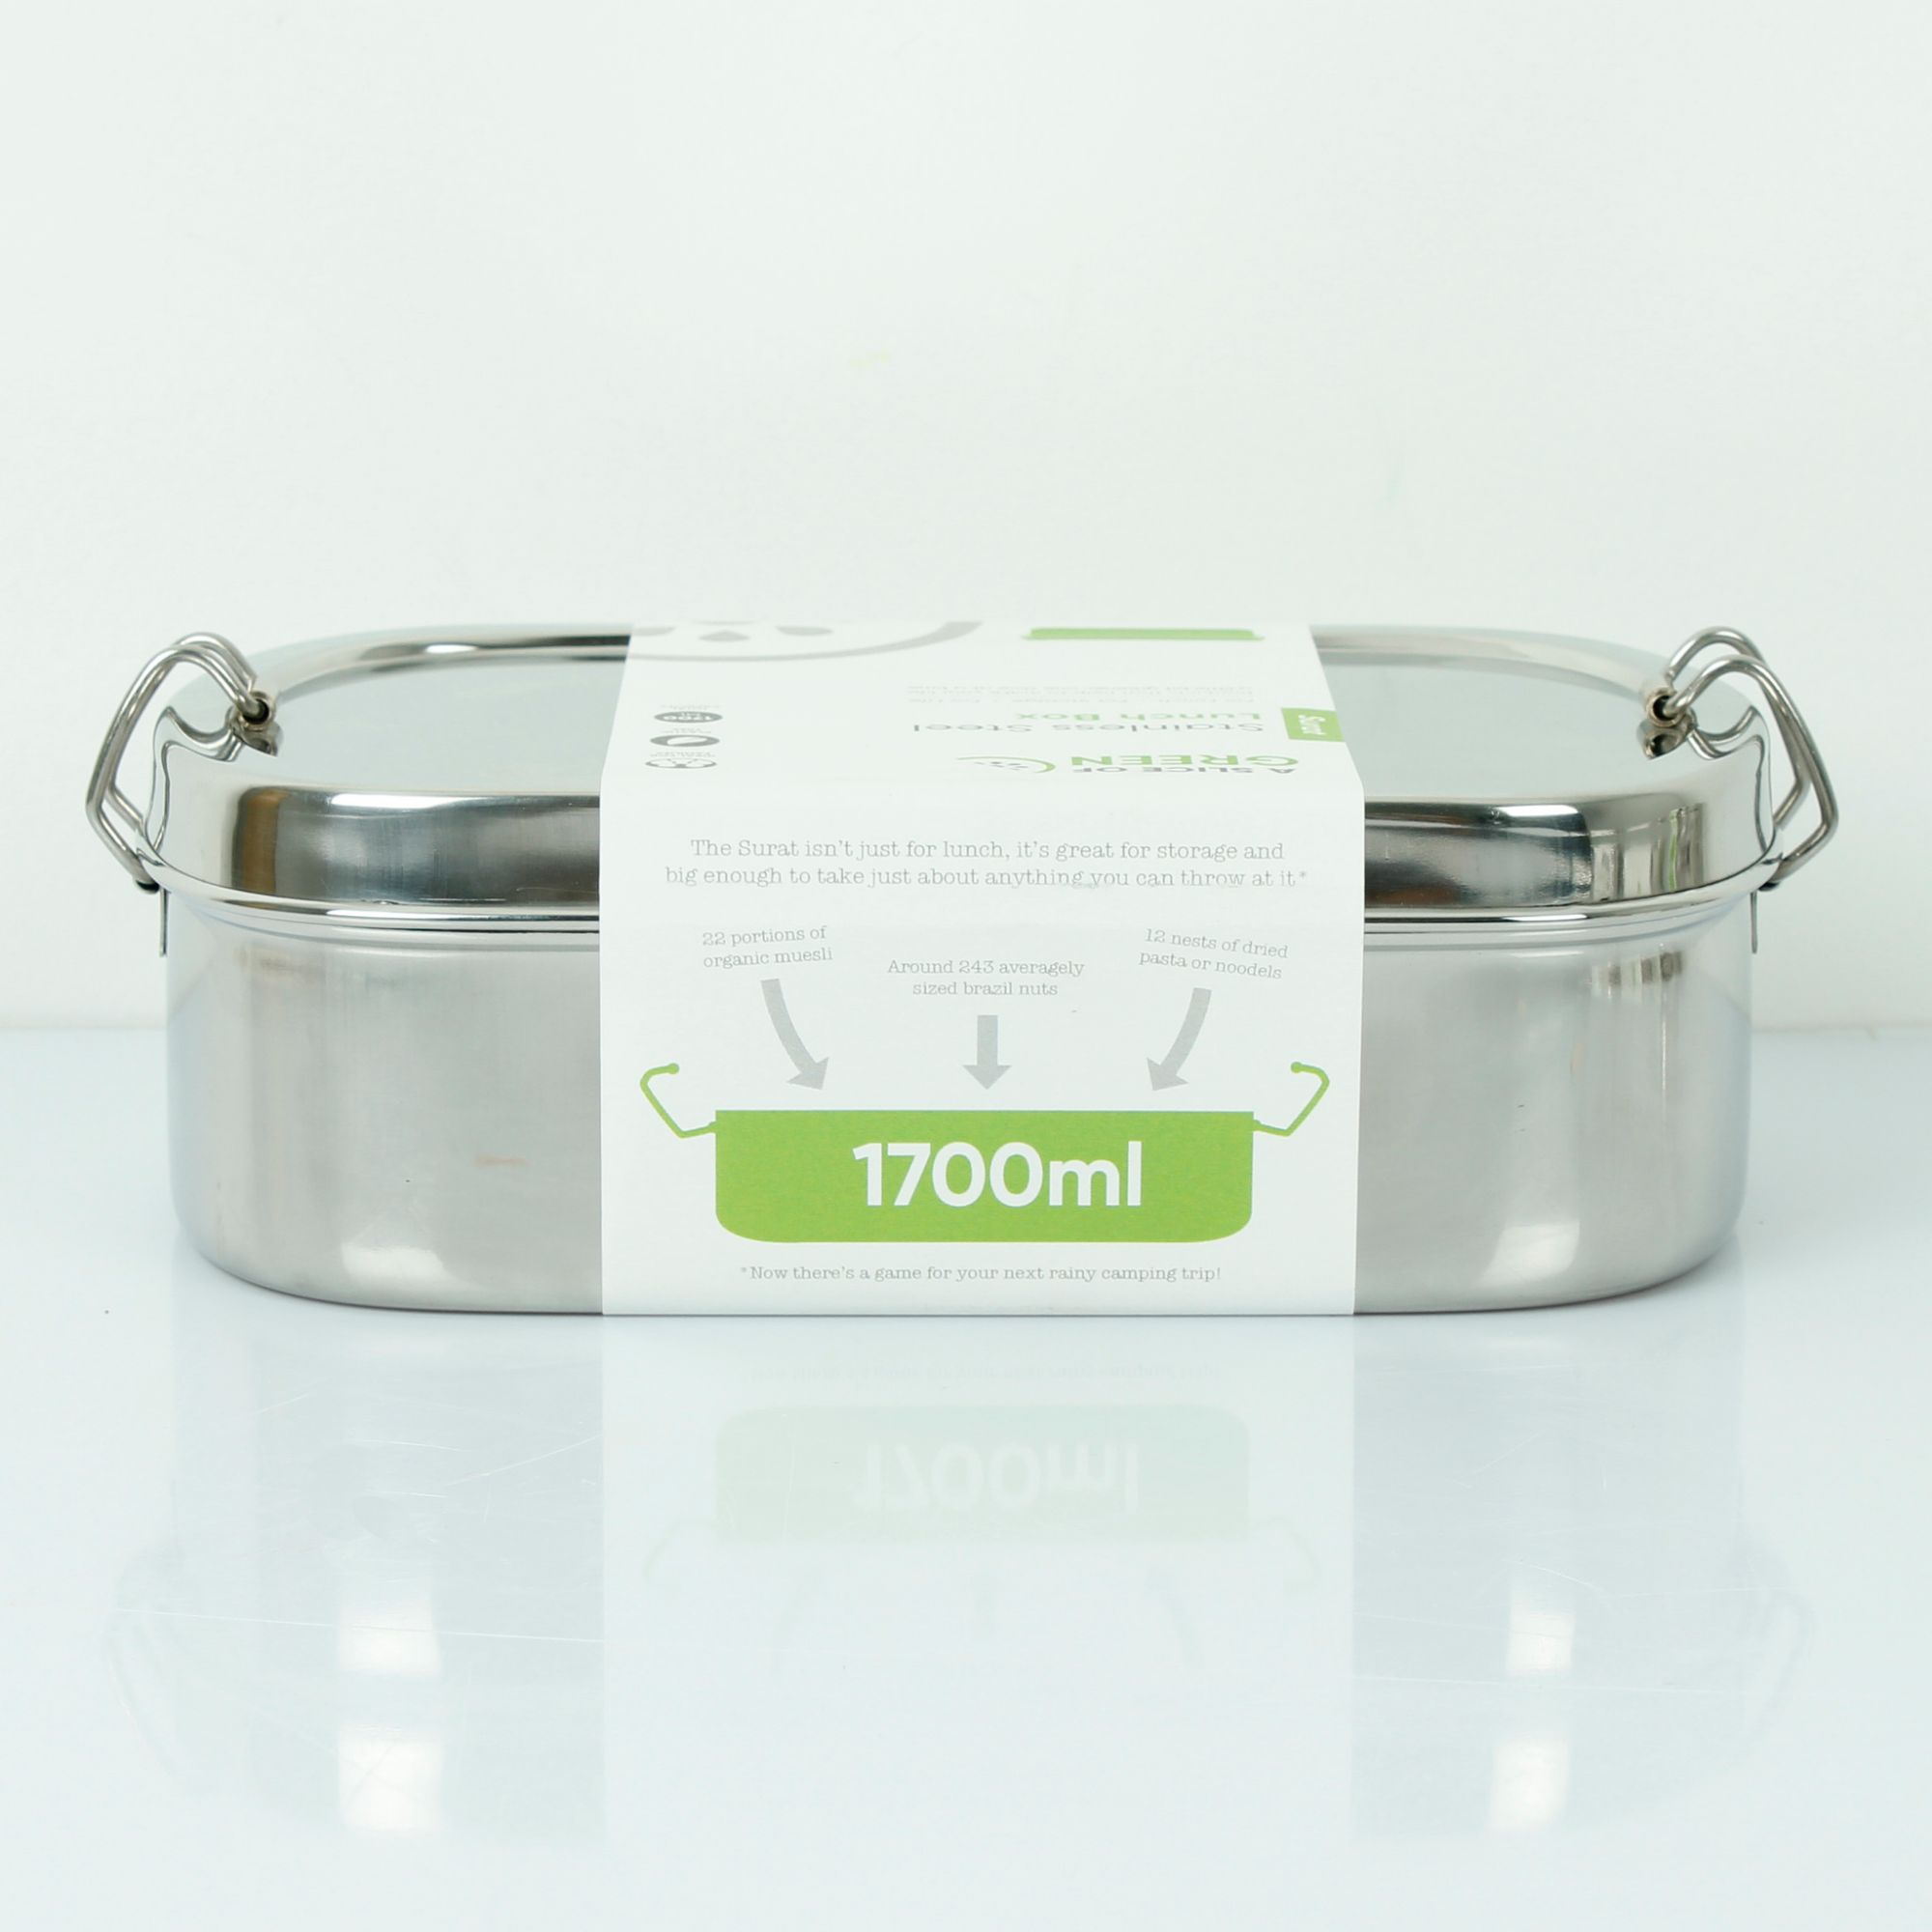 Stainless Steel Tins